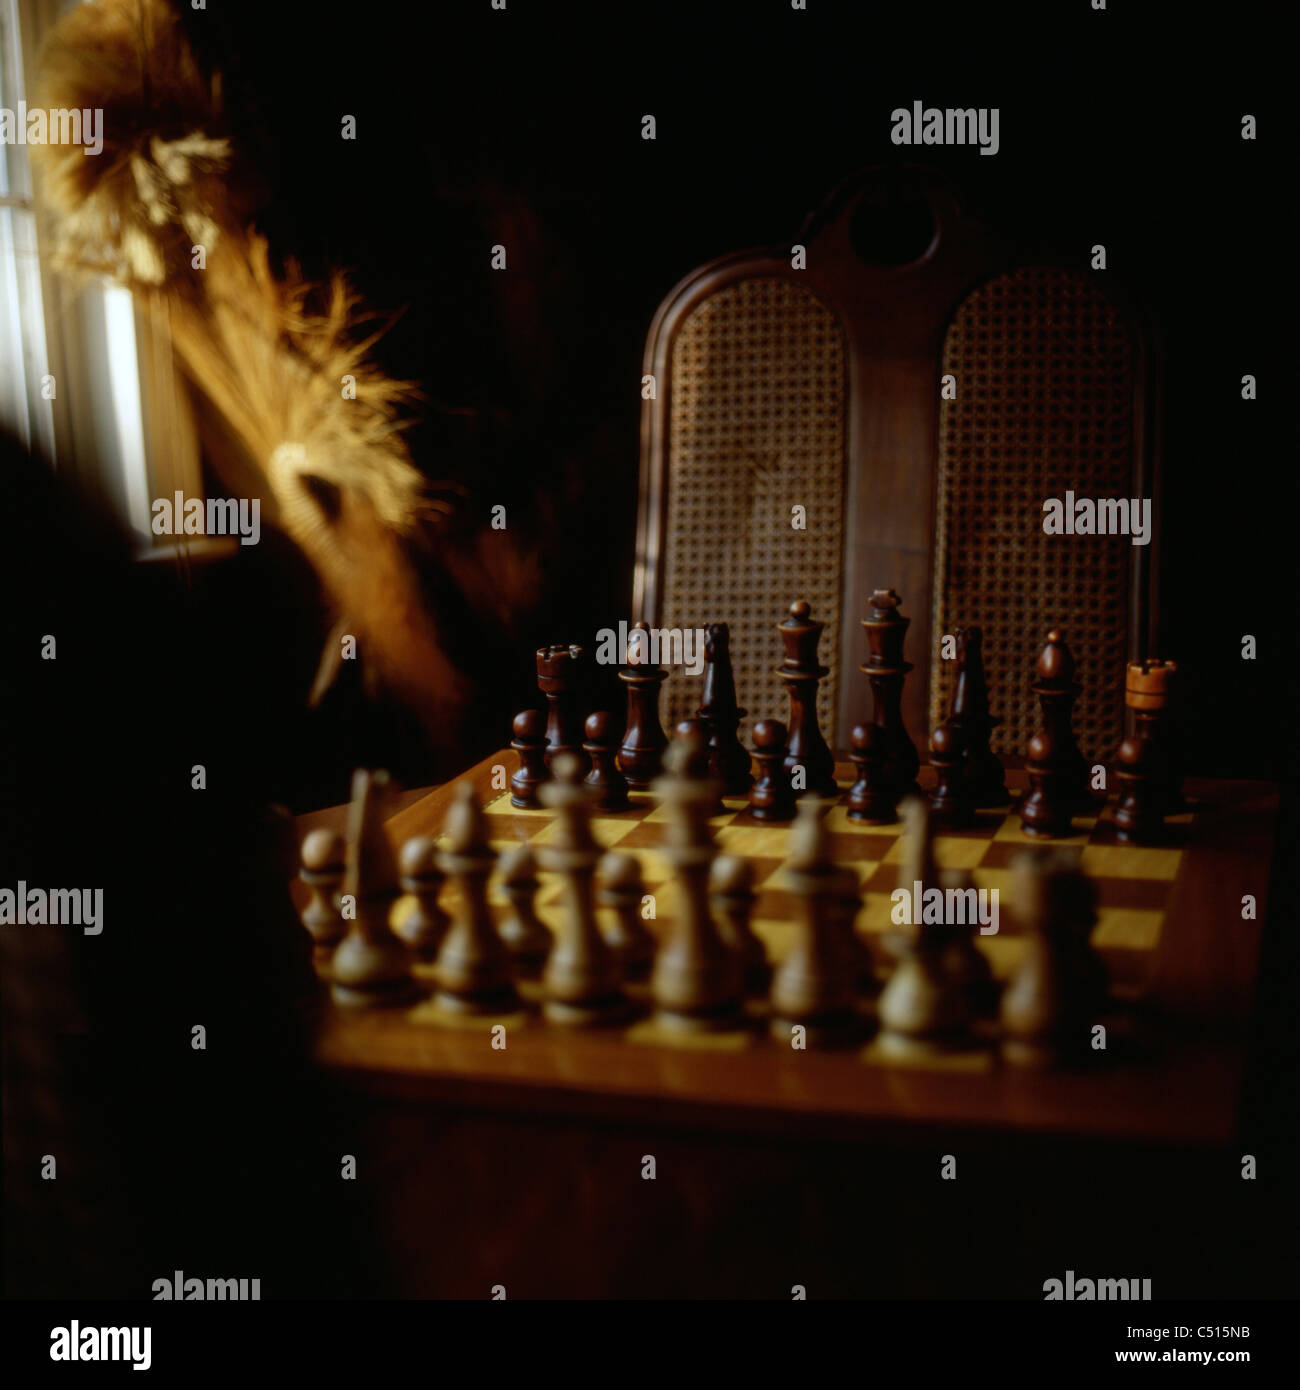 Chessboard - Stock Image